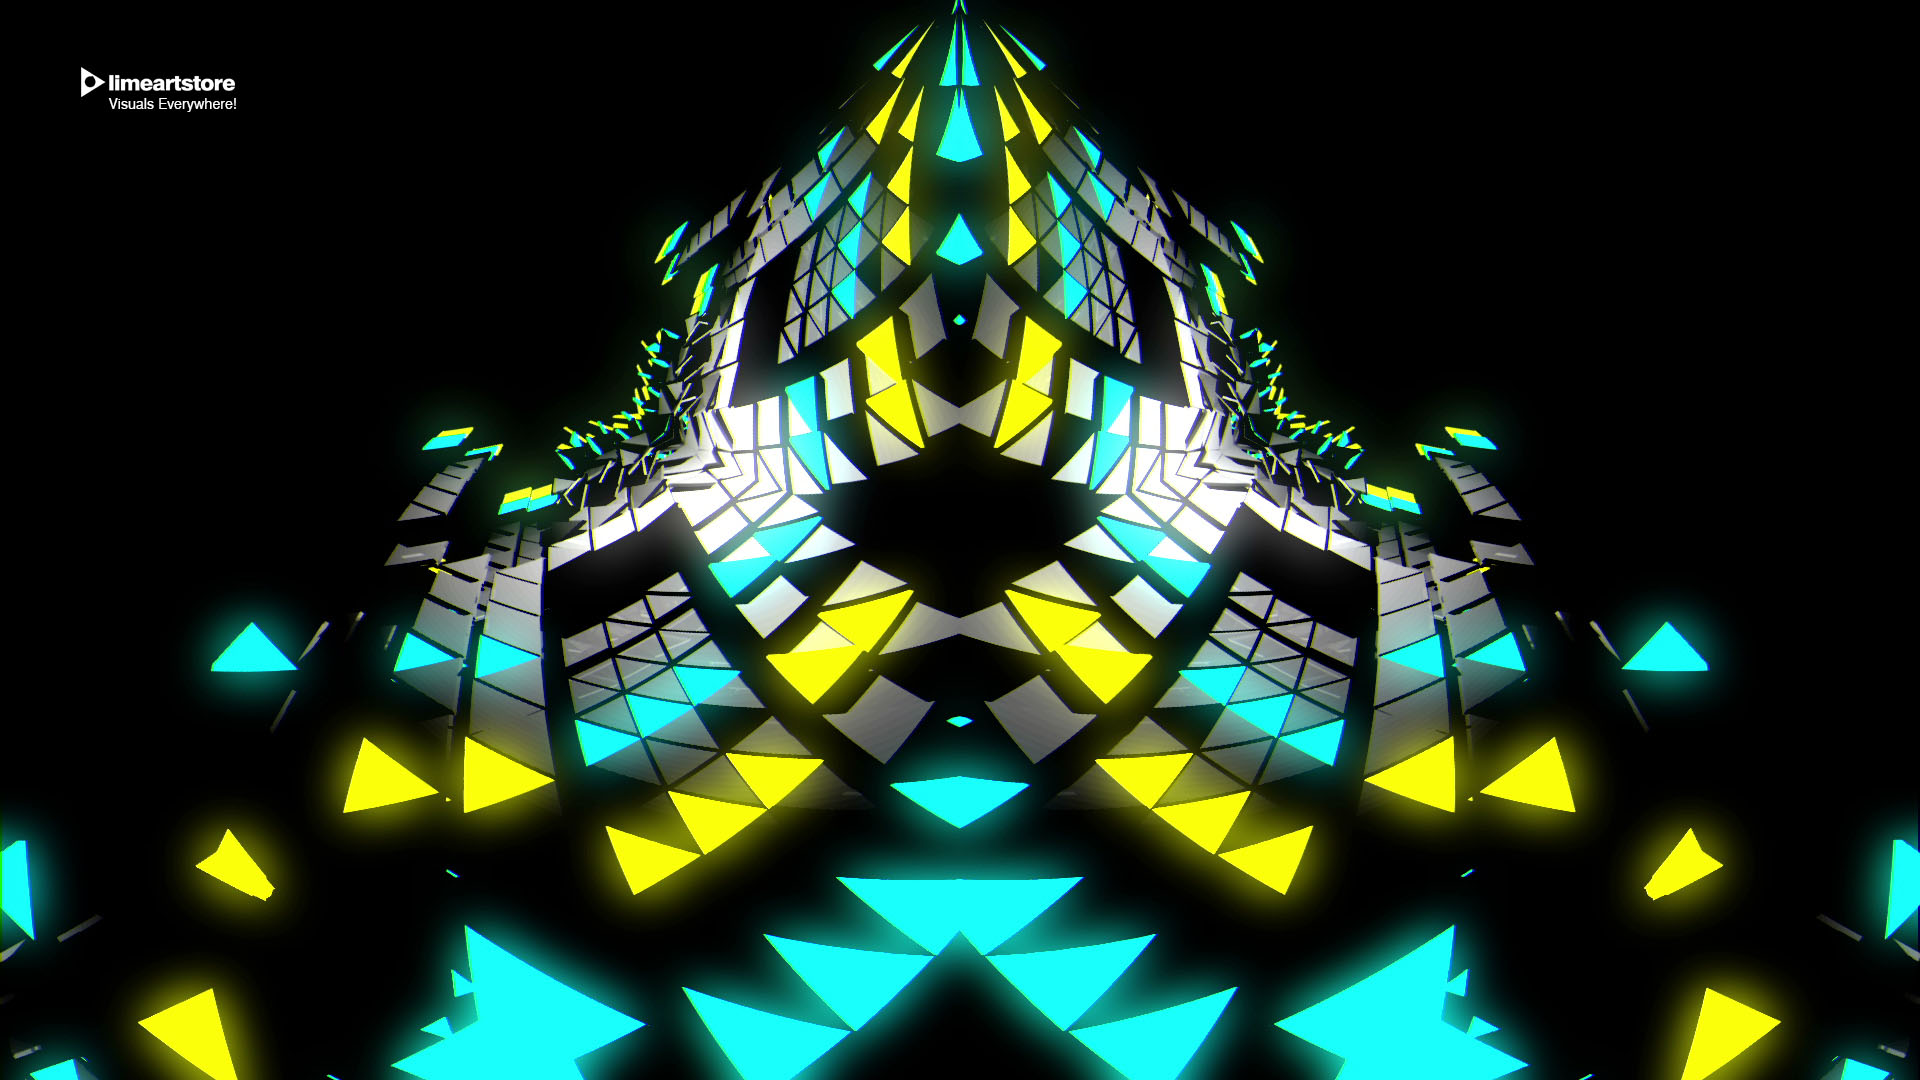 EDM visuals vj loops